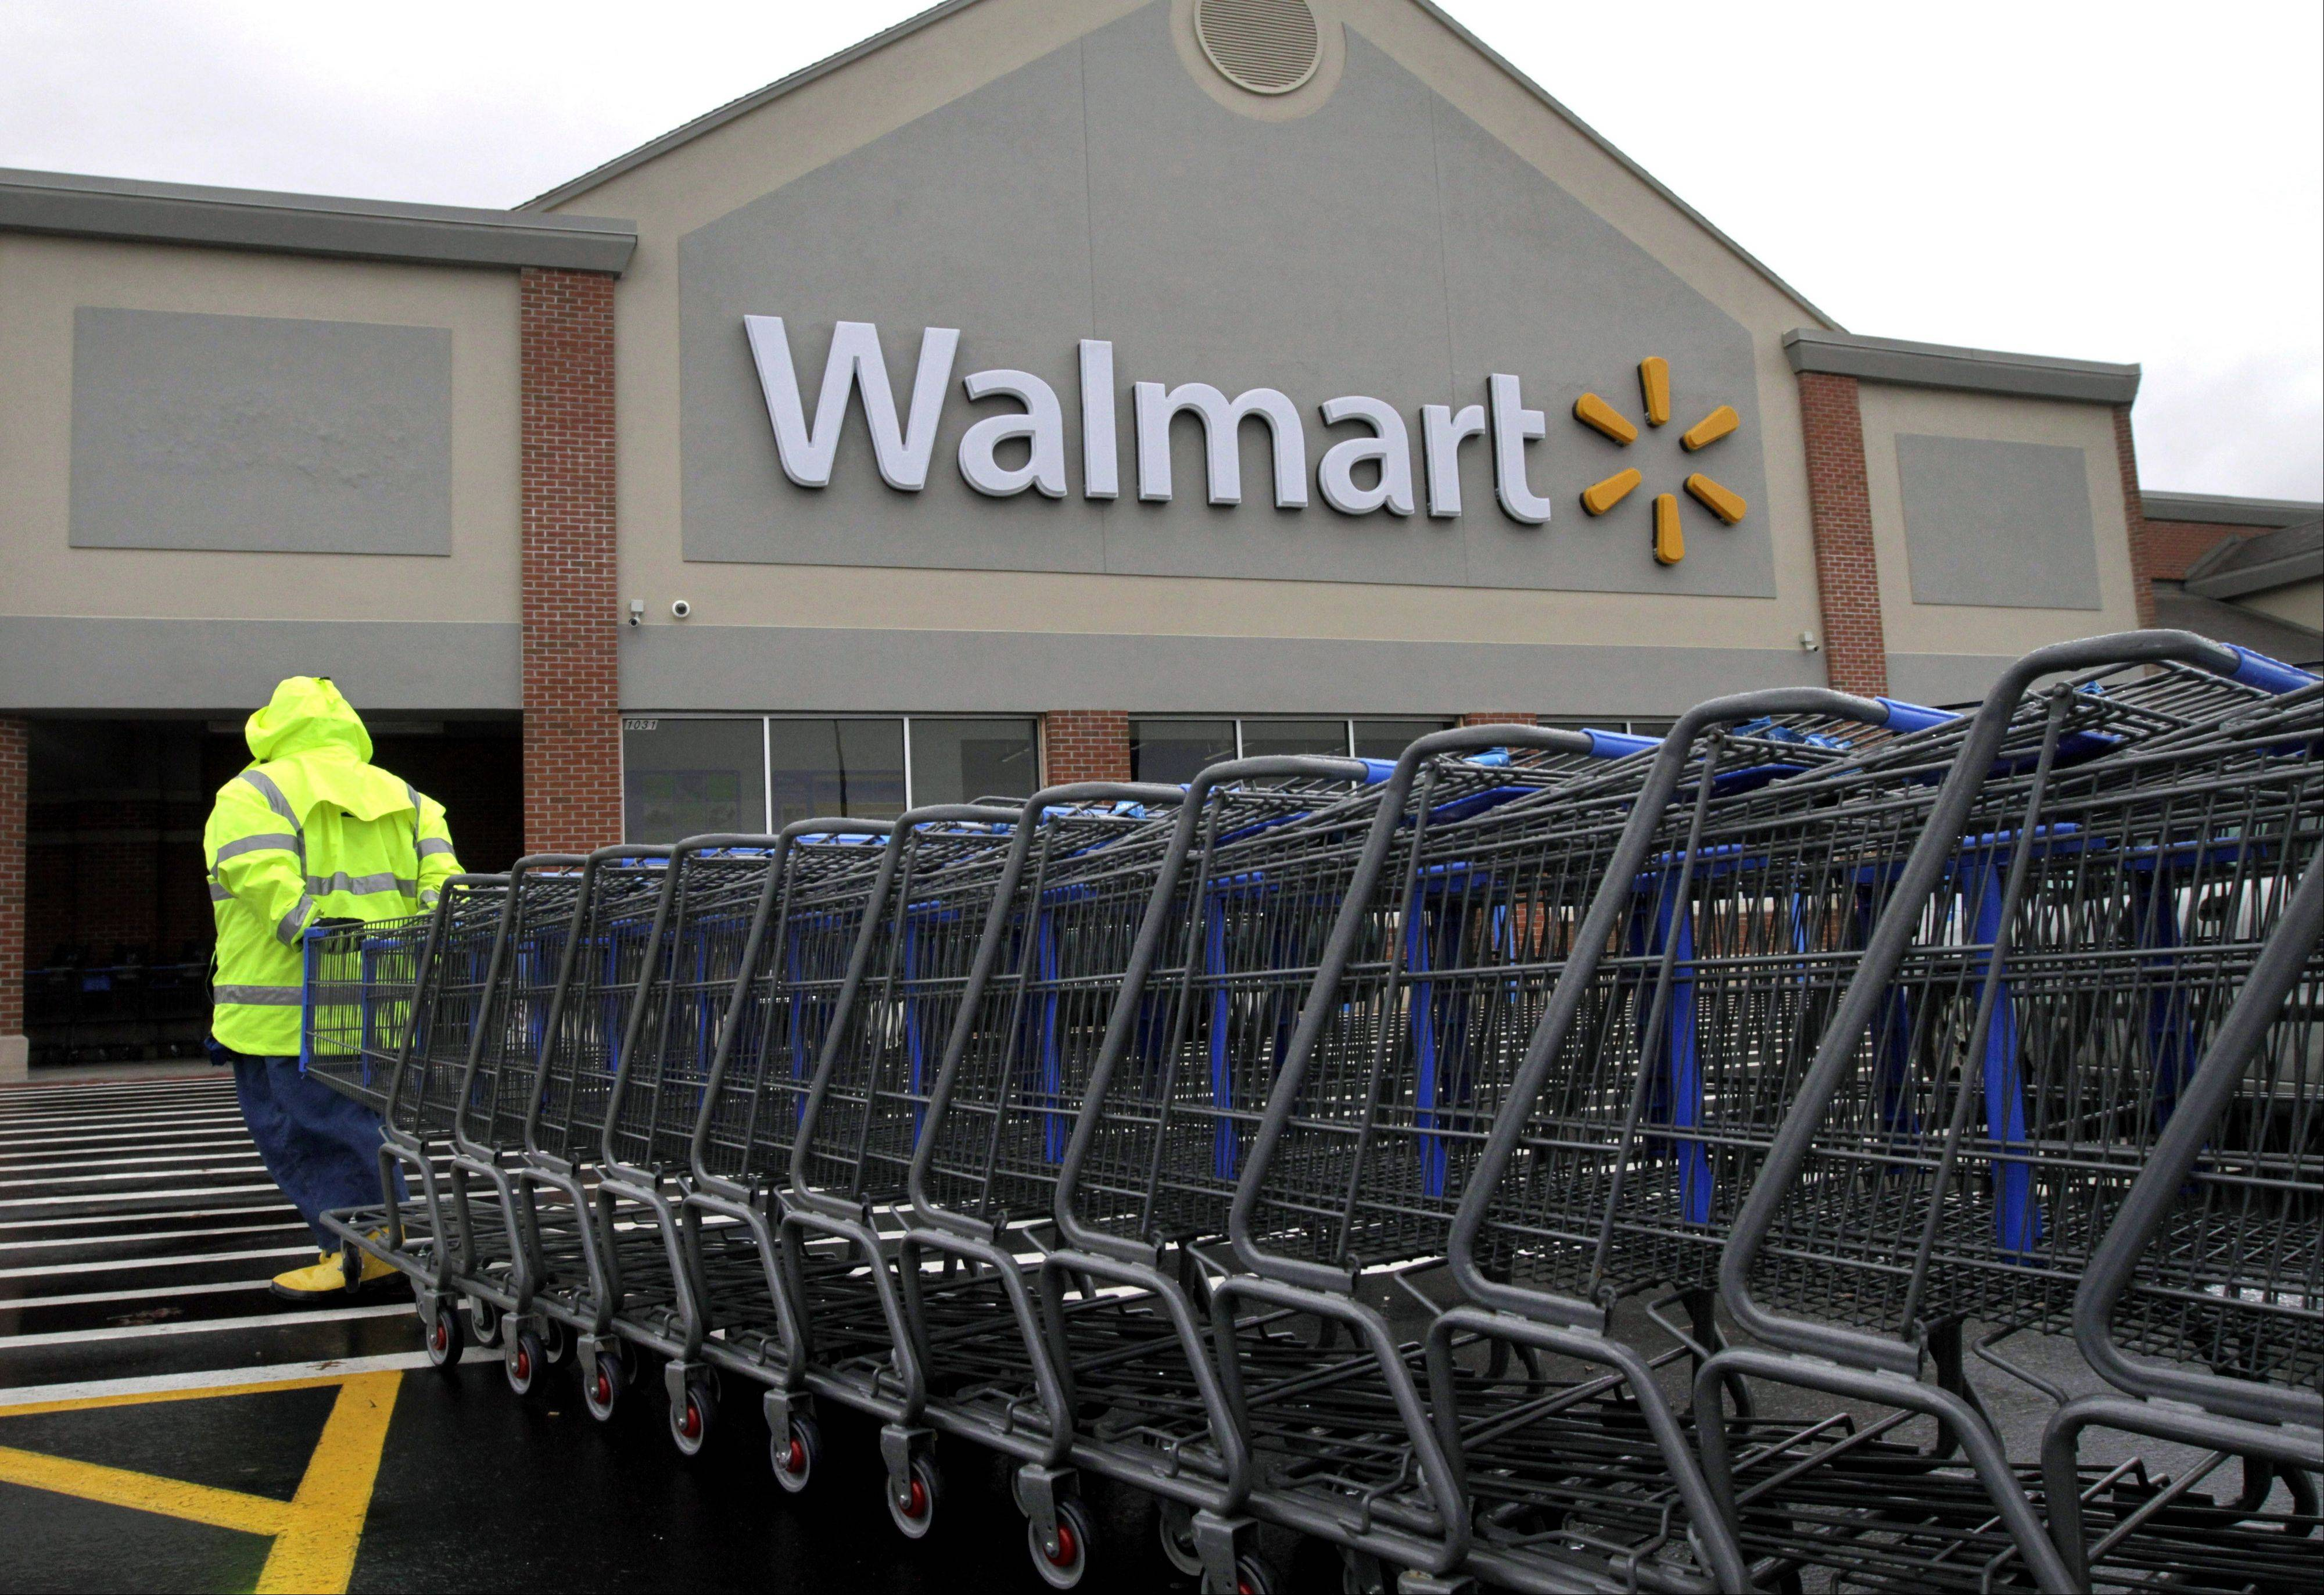 The National Labor Relations Board says Wal-Mart illegally fired, disciplined or threatened more than 60 employees in 14 states including Illinois for participating in legally protected activities to complain about wages and working conditions at the nation's largest retailer.